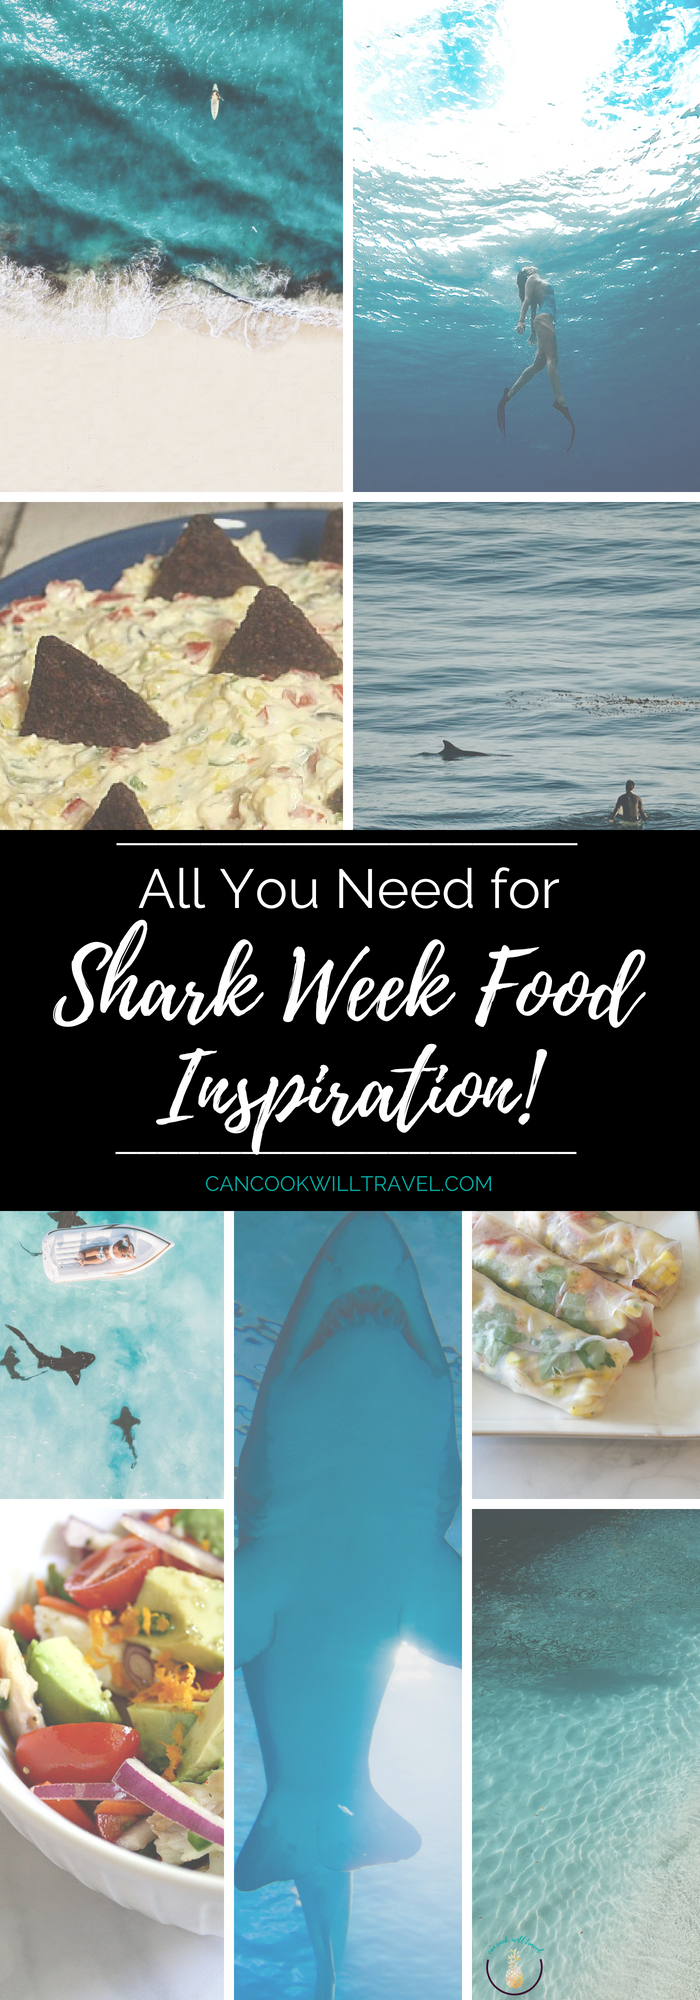 Shark Week Food Ideas & Inspiration #sharkweekfood I love Summer and one of my favorite parts is Shark Week. So I'm sharing Shark Week Food, fun crafty recipes, those with a subtle ocean vibe, and cool shark products! #sharkweek #sharkweekfood #sharkthemerecipes #sharkweekfood